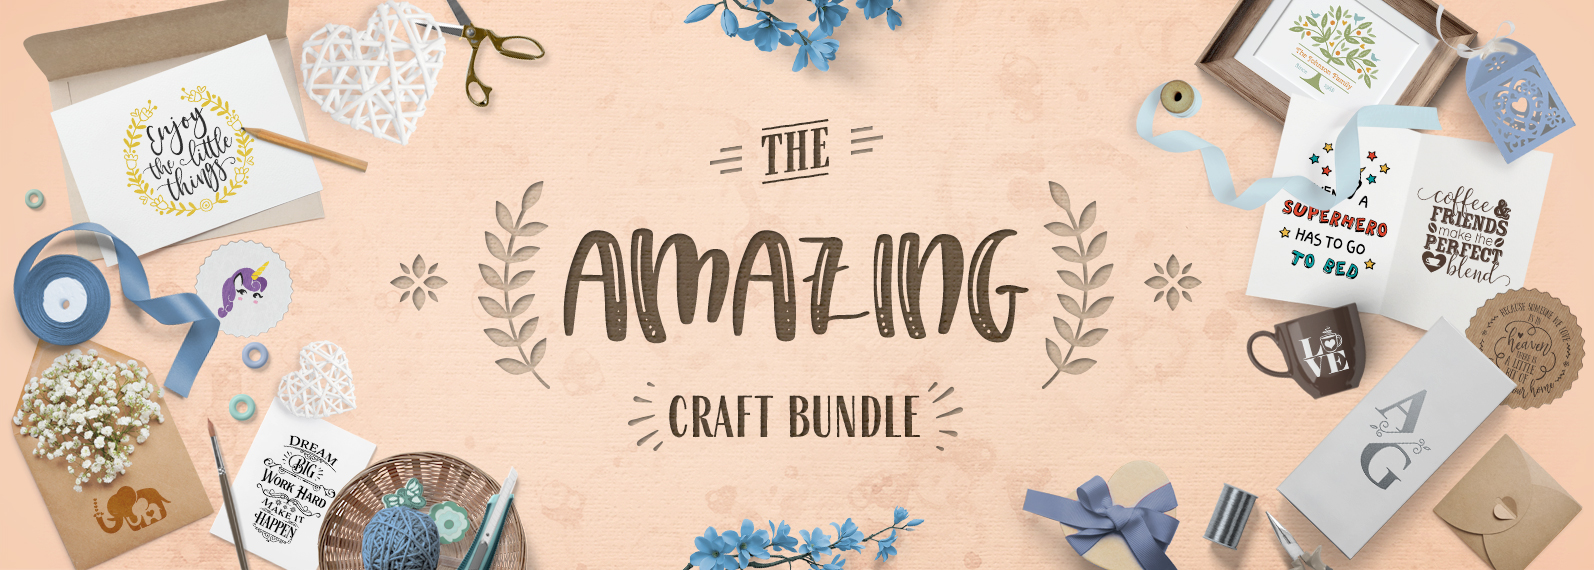 The Amazing Craft Bundle Cover